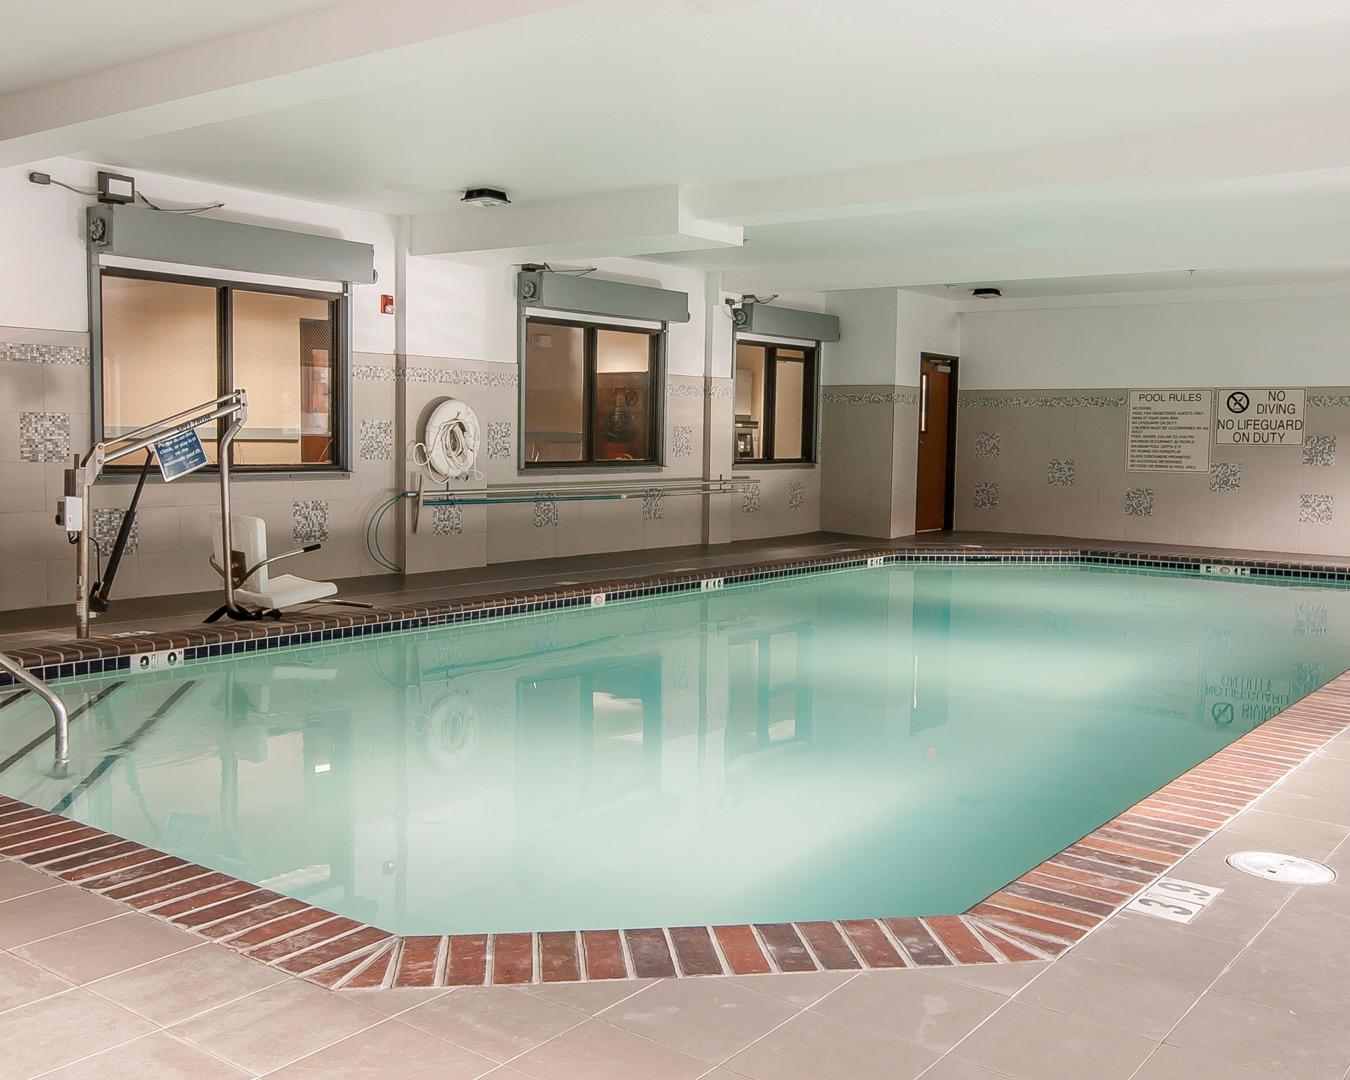 Comfort Suites Coupons Near Me In Hood River 8coupons